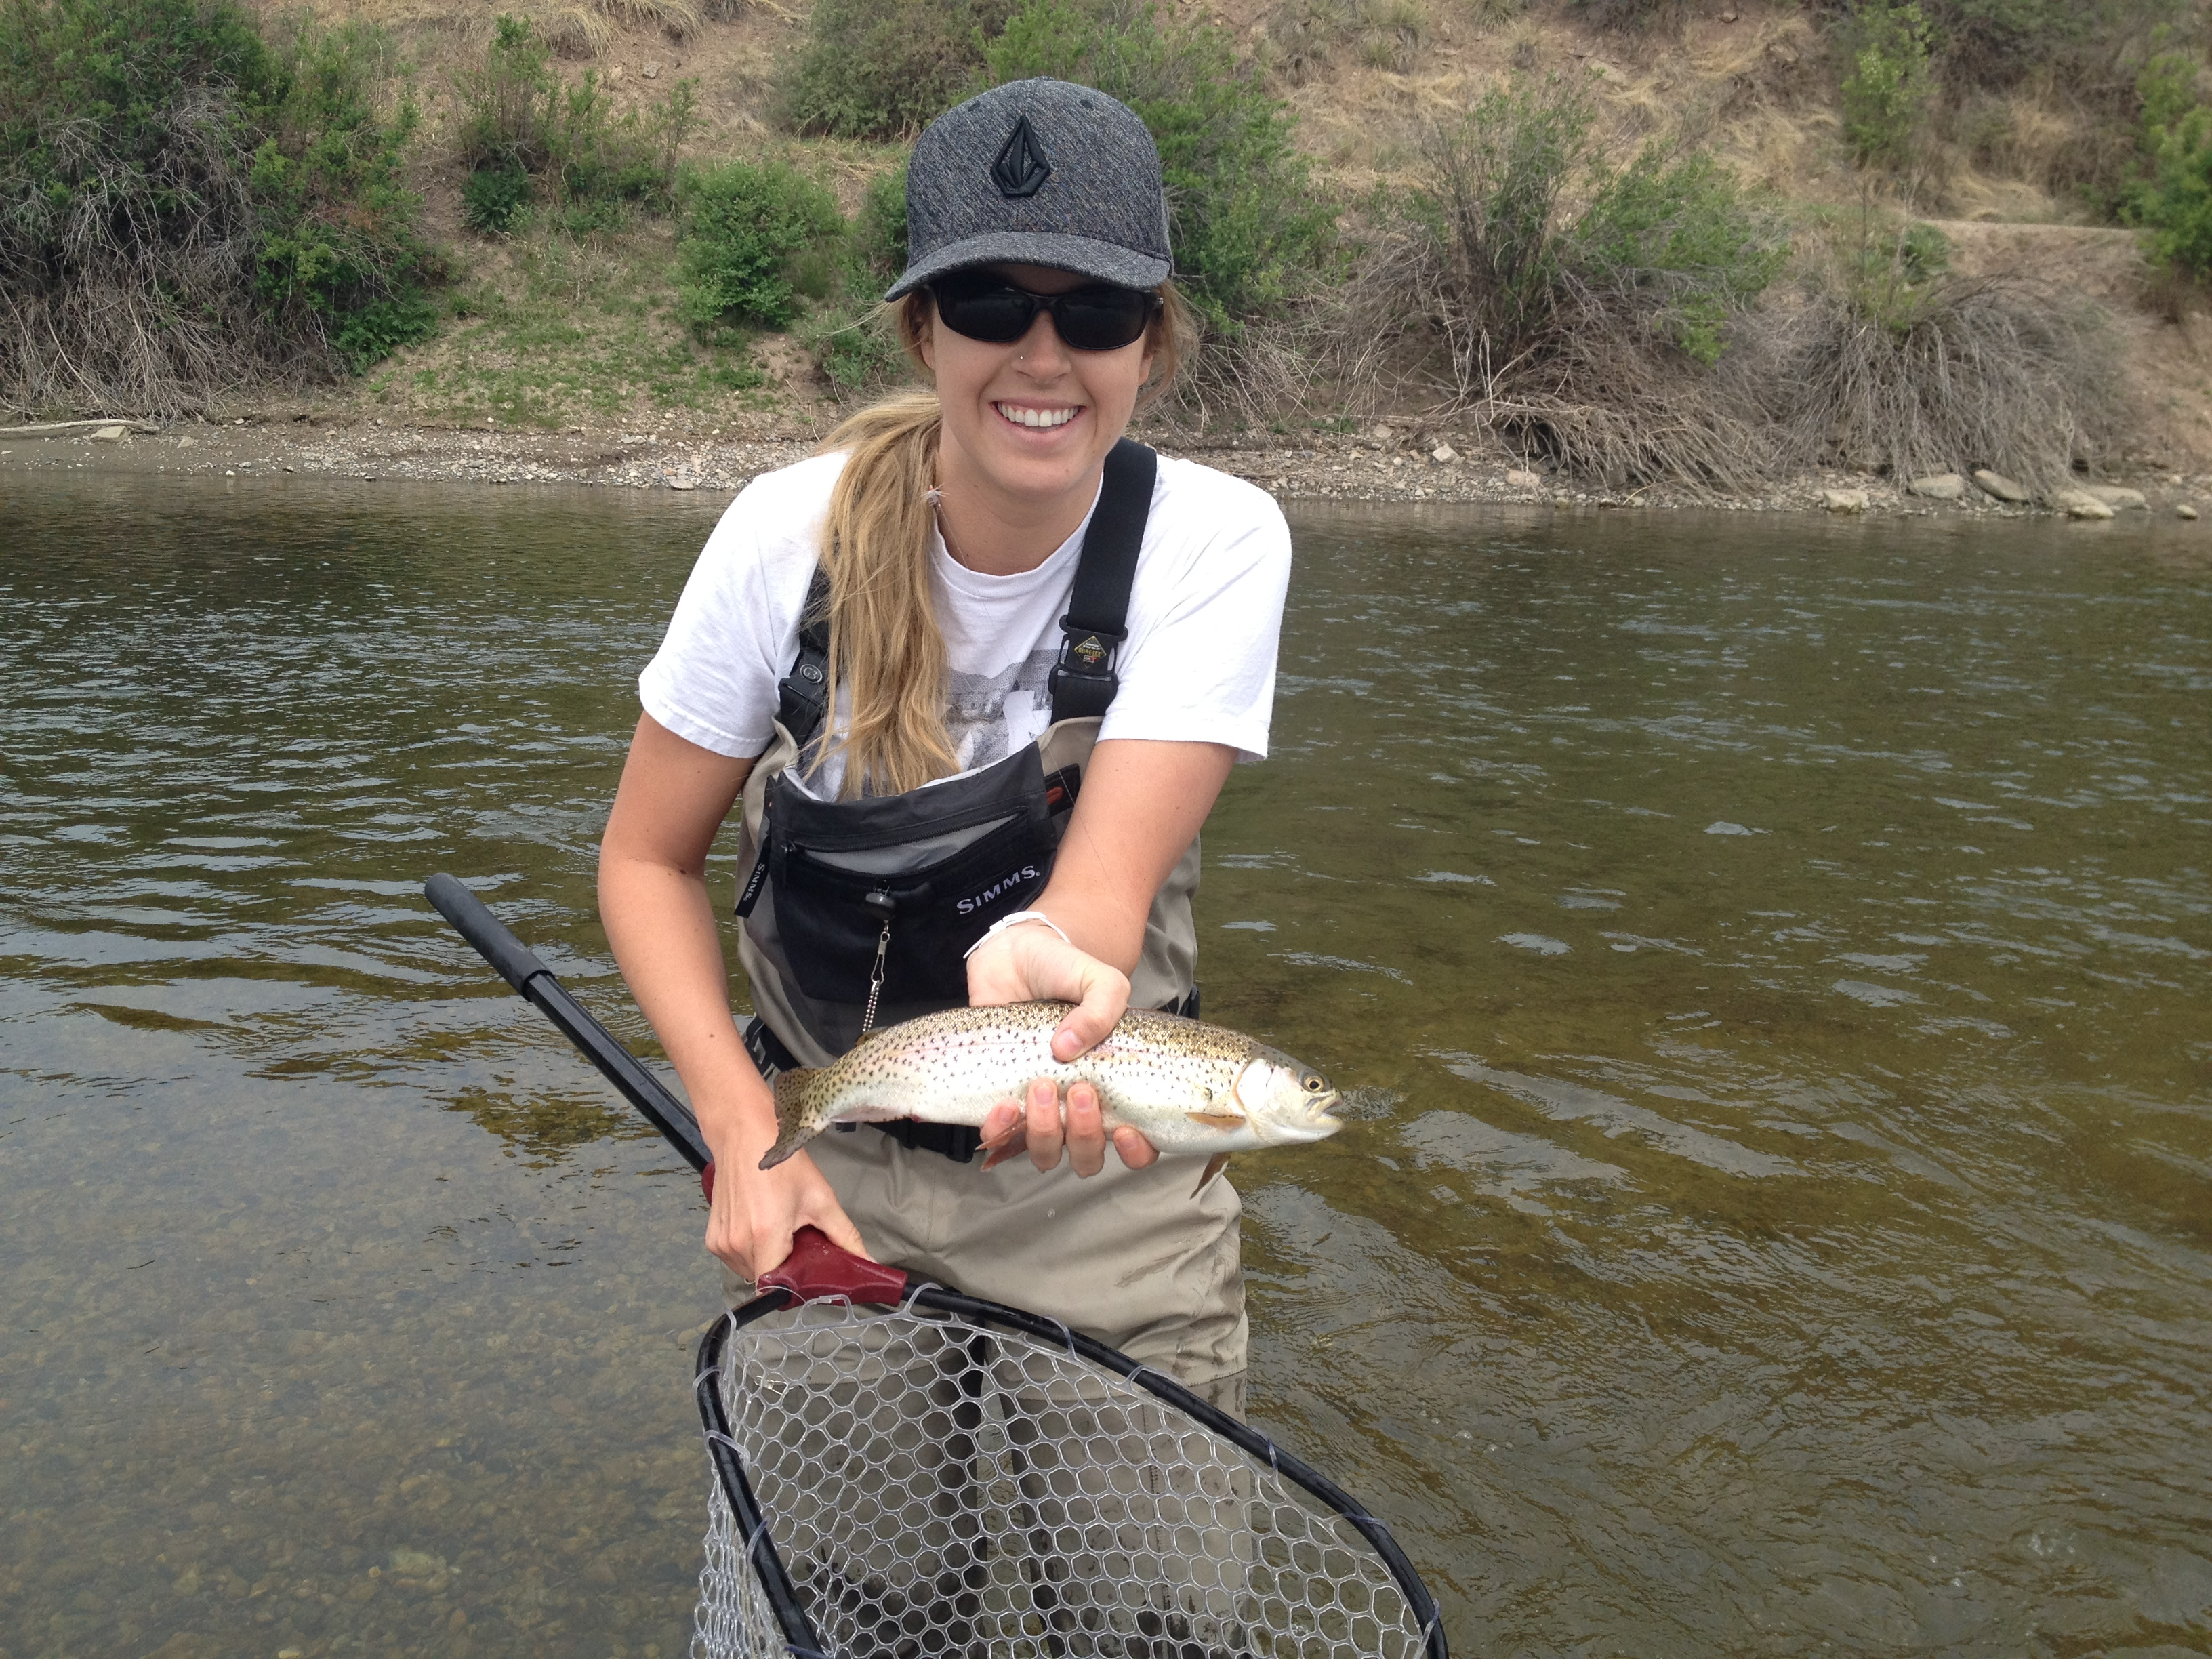 Woman Fly Fishing Stock Photos, Images, & Pictures - 173 ...